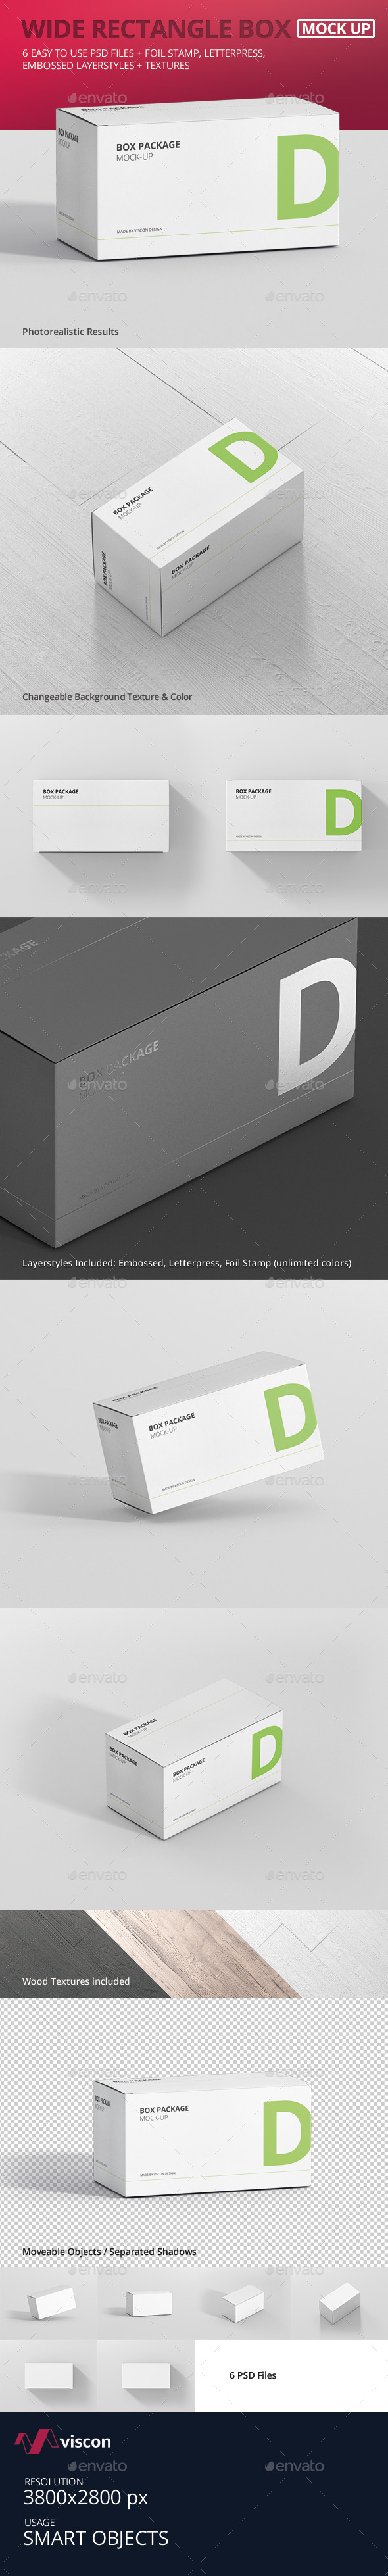 Package Box Mock-Up - Wide Rectangle